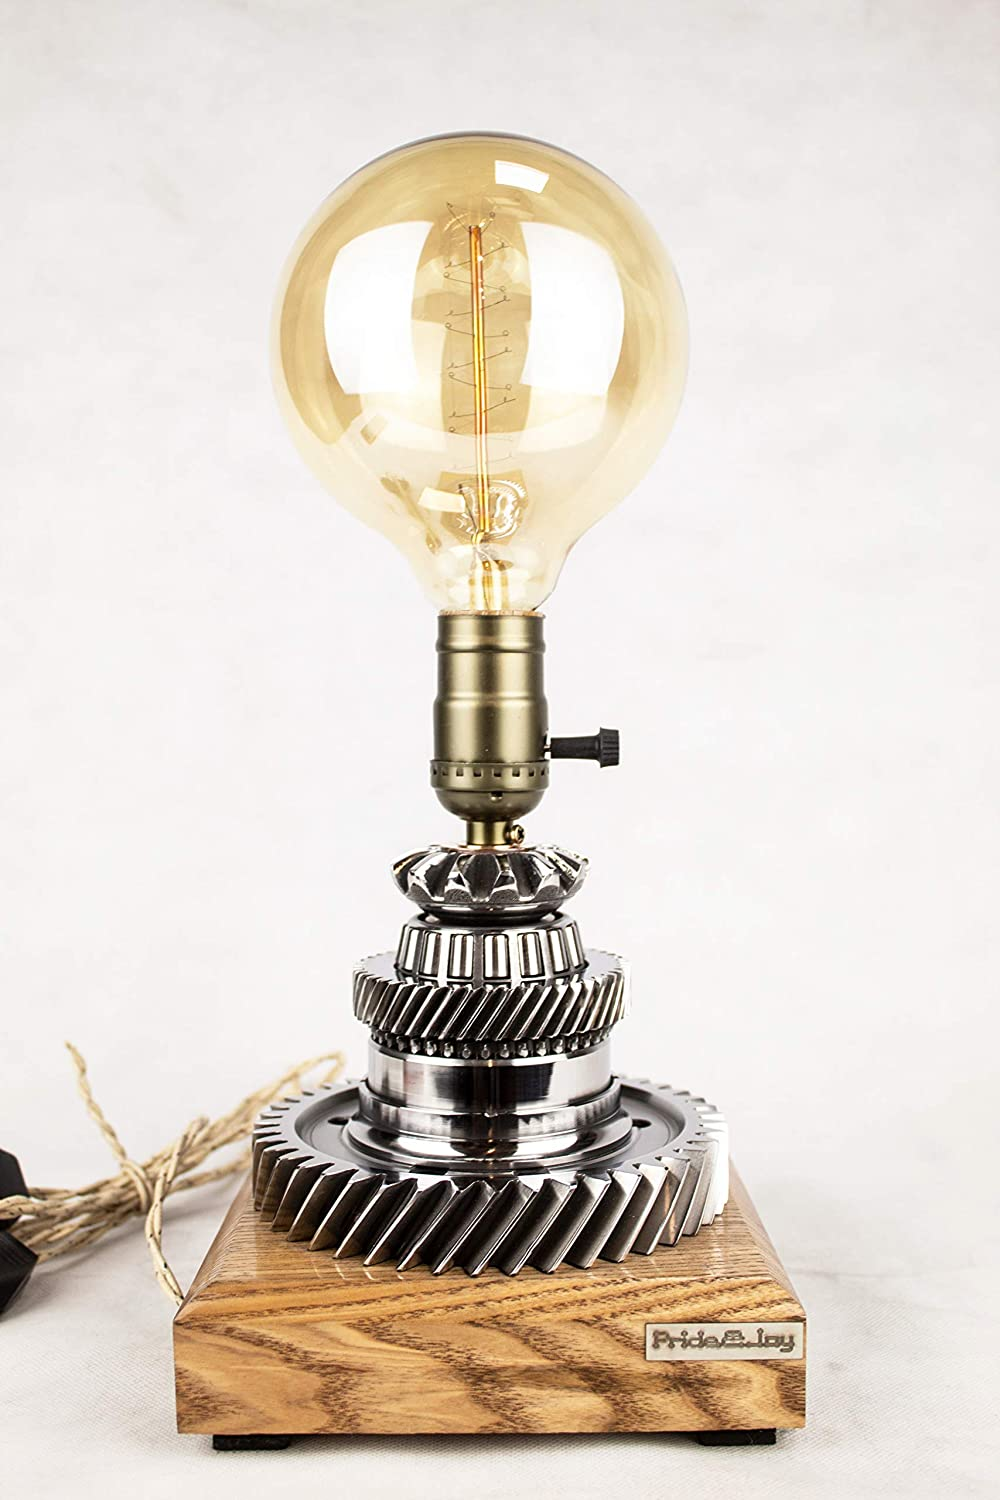 Industrial List price Table Lamp PrideJoy steampunk Max 79% OFF part lamp car for Gift